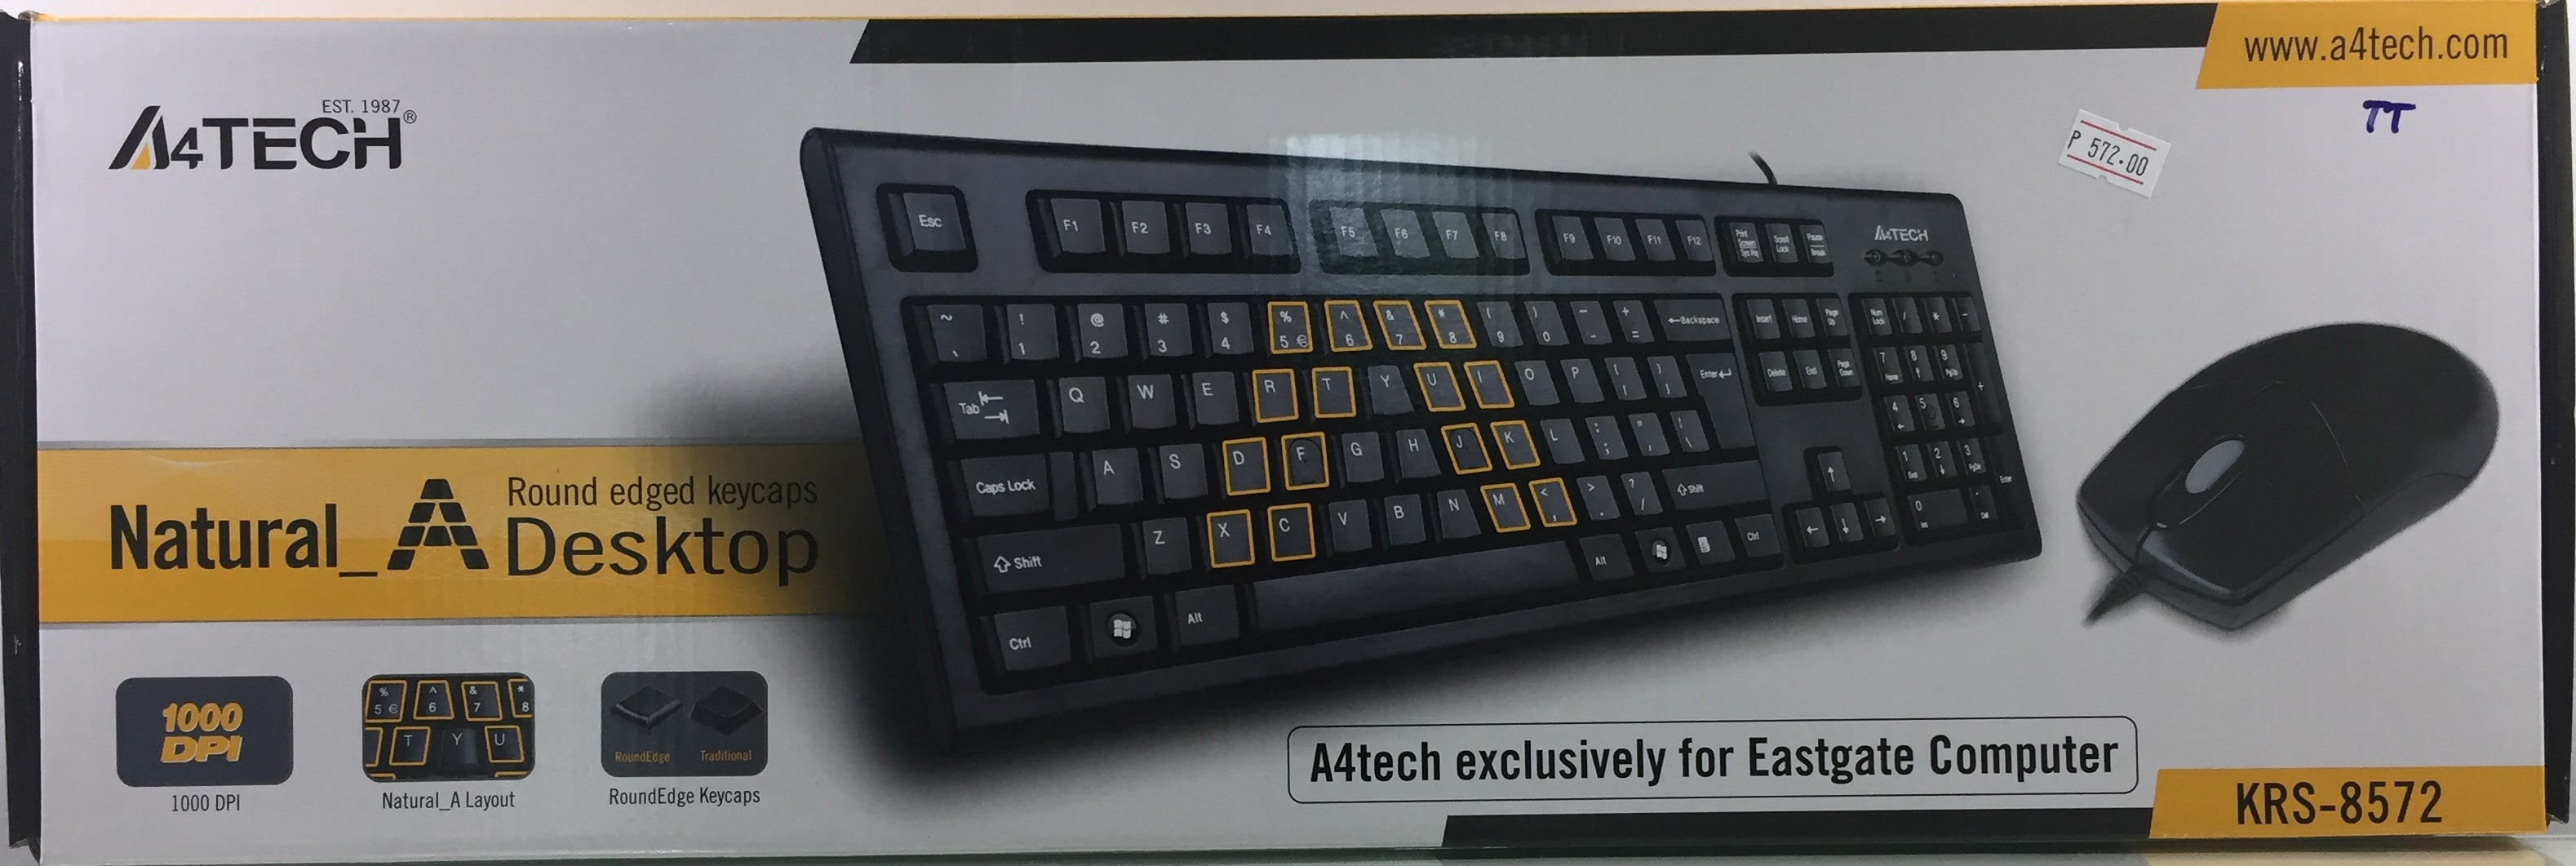 A4TECH KRS-8572 KEYBOARD + MOUSE USB BLACK - checkwayelectrotech.com